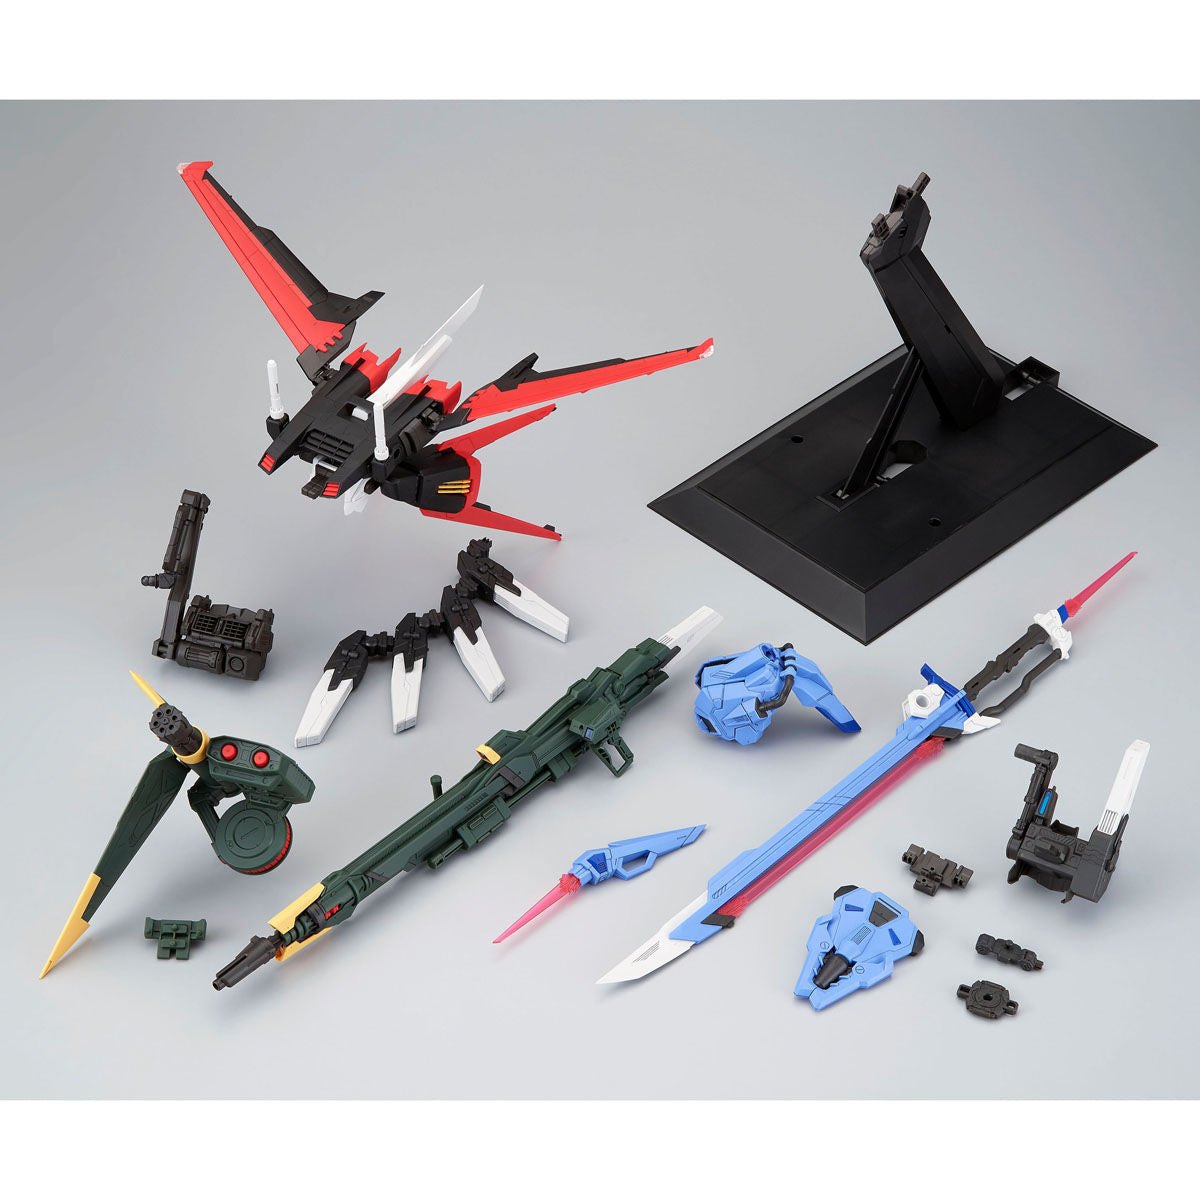 P-BANDAI: PG 1/60 PERFECT STRIKE GUNDAM EXPANSION EQUIPMENT SET **PARTS ONLY**  [End of JUNE 2020]